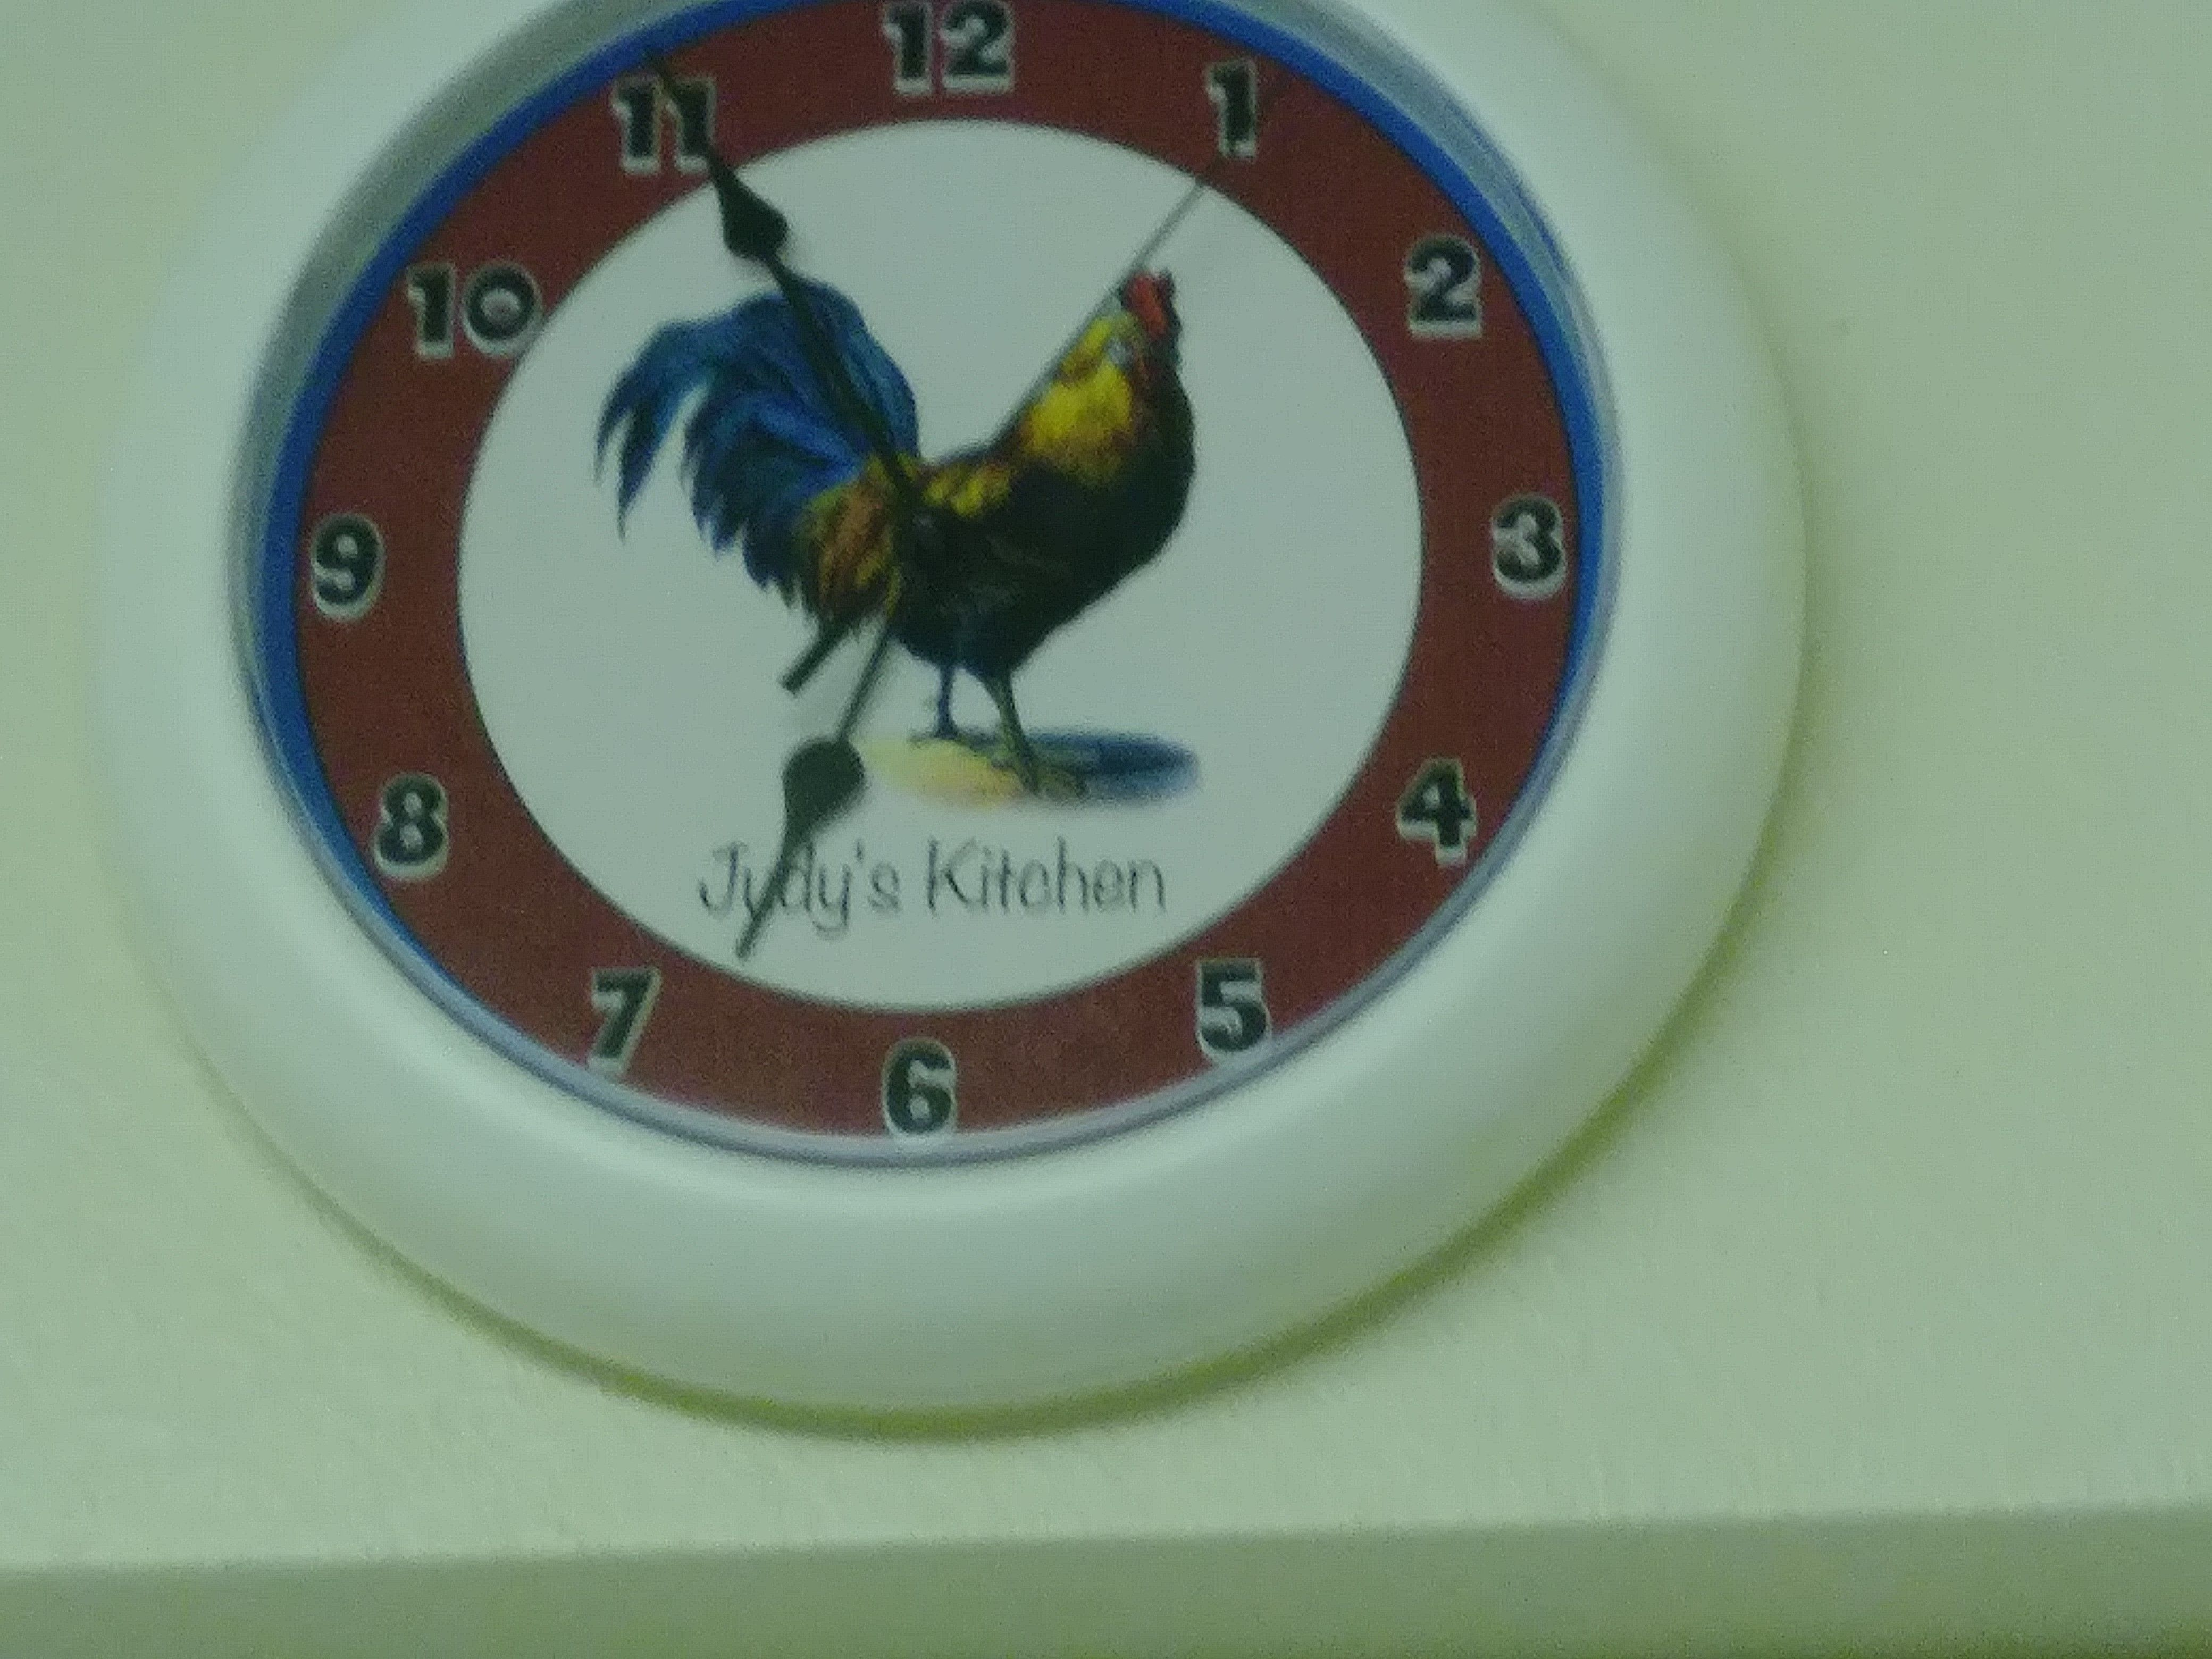 Pin by JUDY MOORE on MY CHICKEN/ROOSTER COLLECTION | Pinterest | Clocks